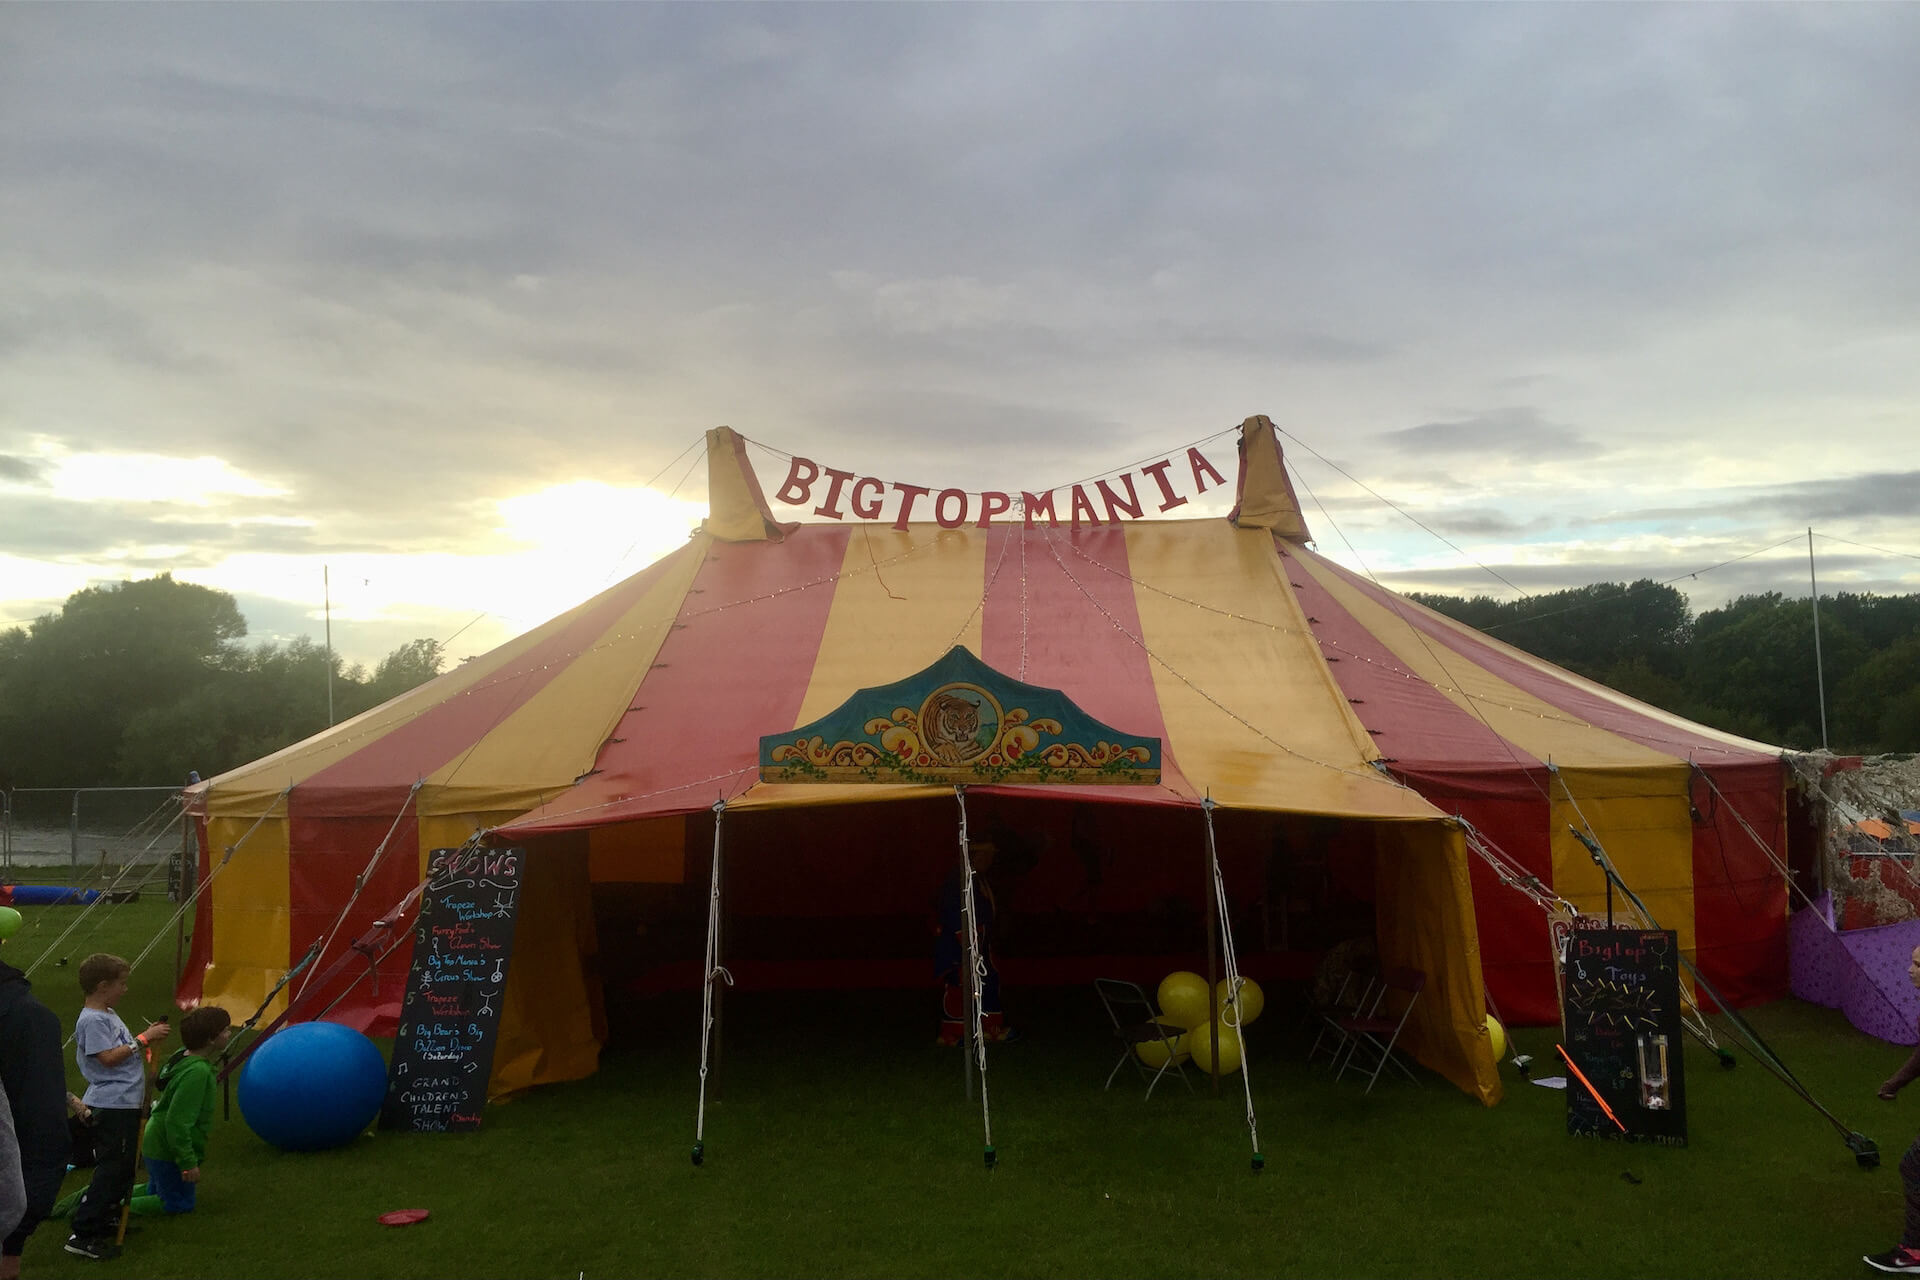 Hire a childrens show tent for an event